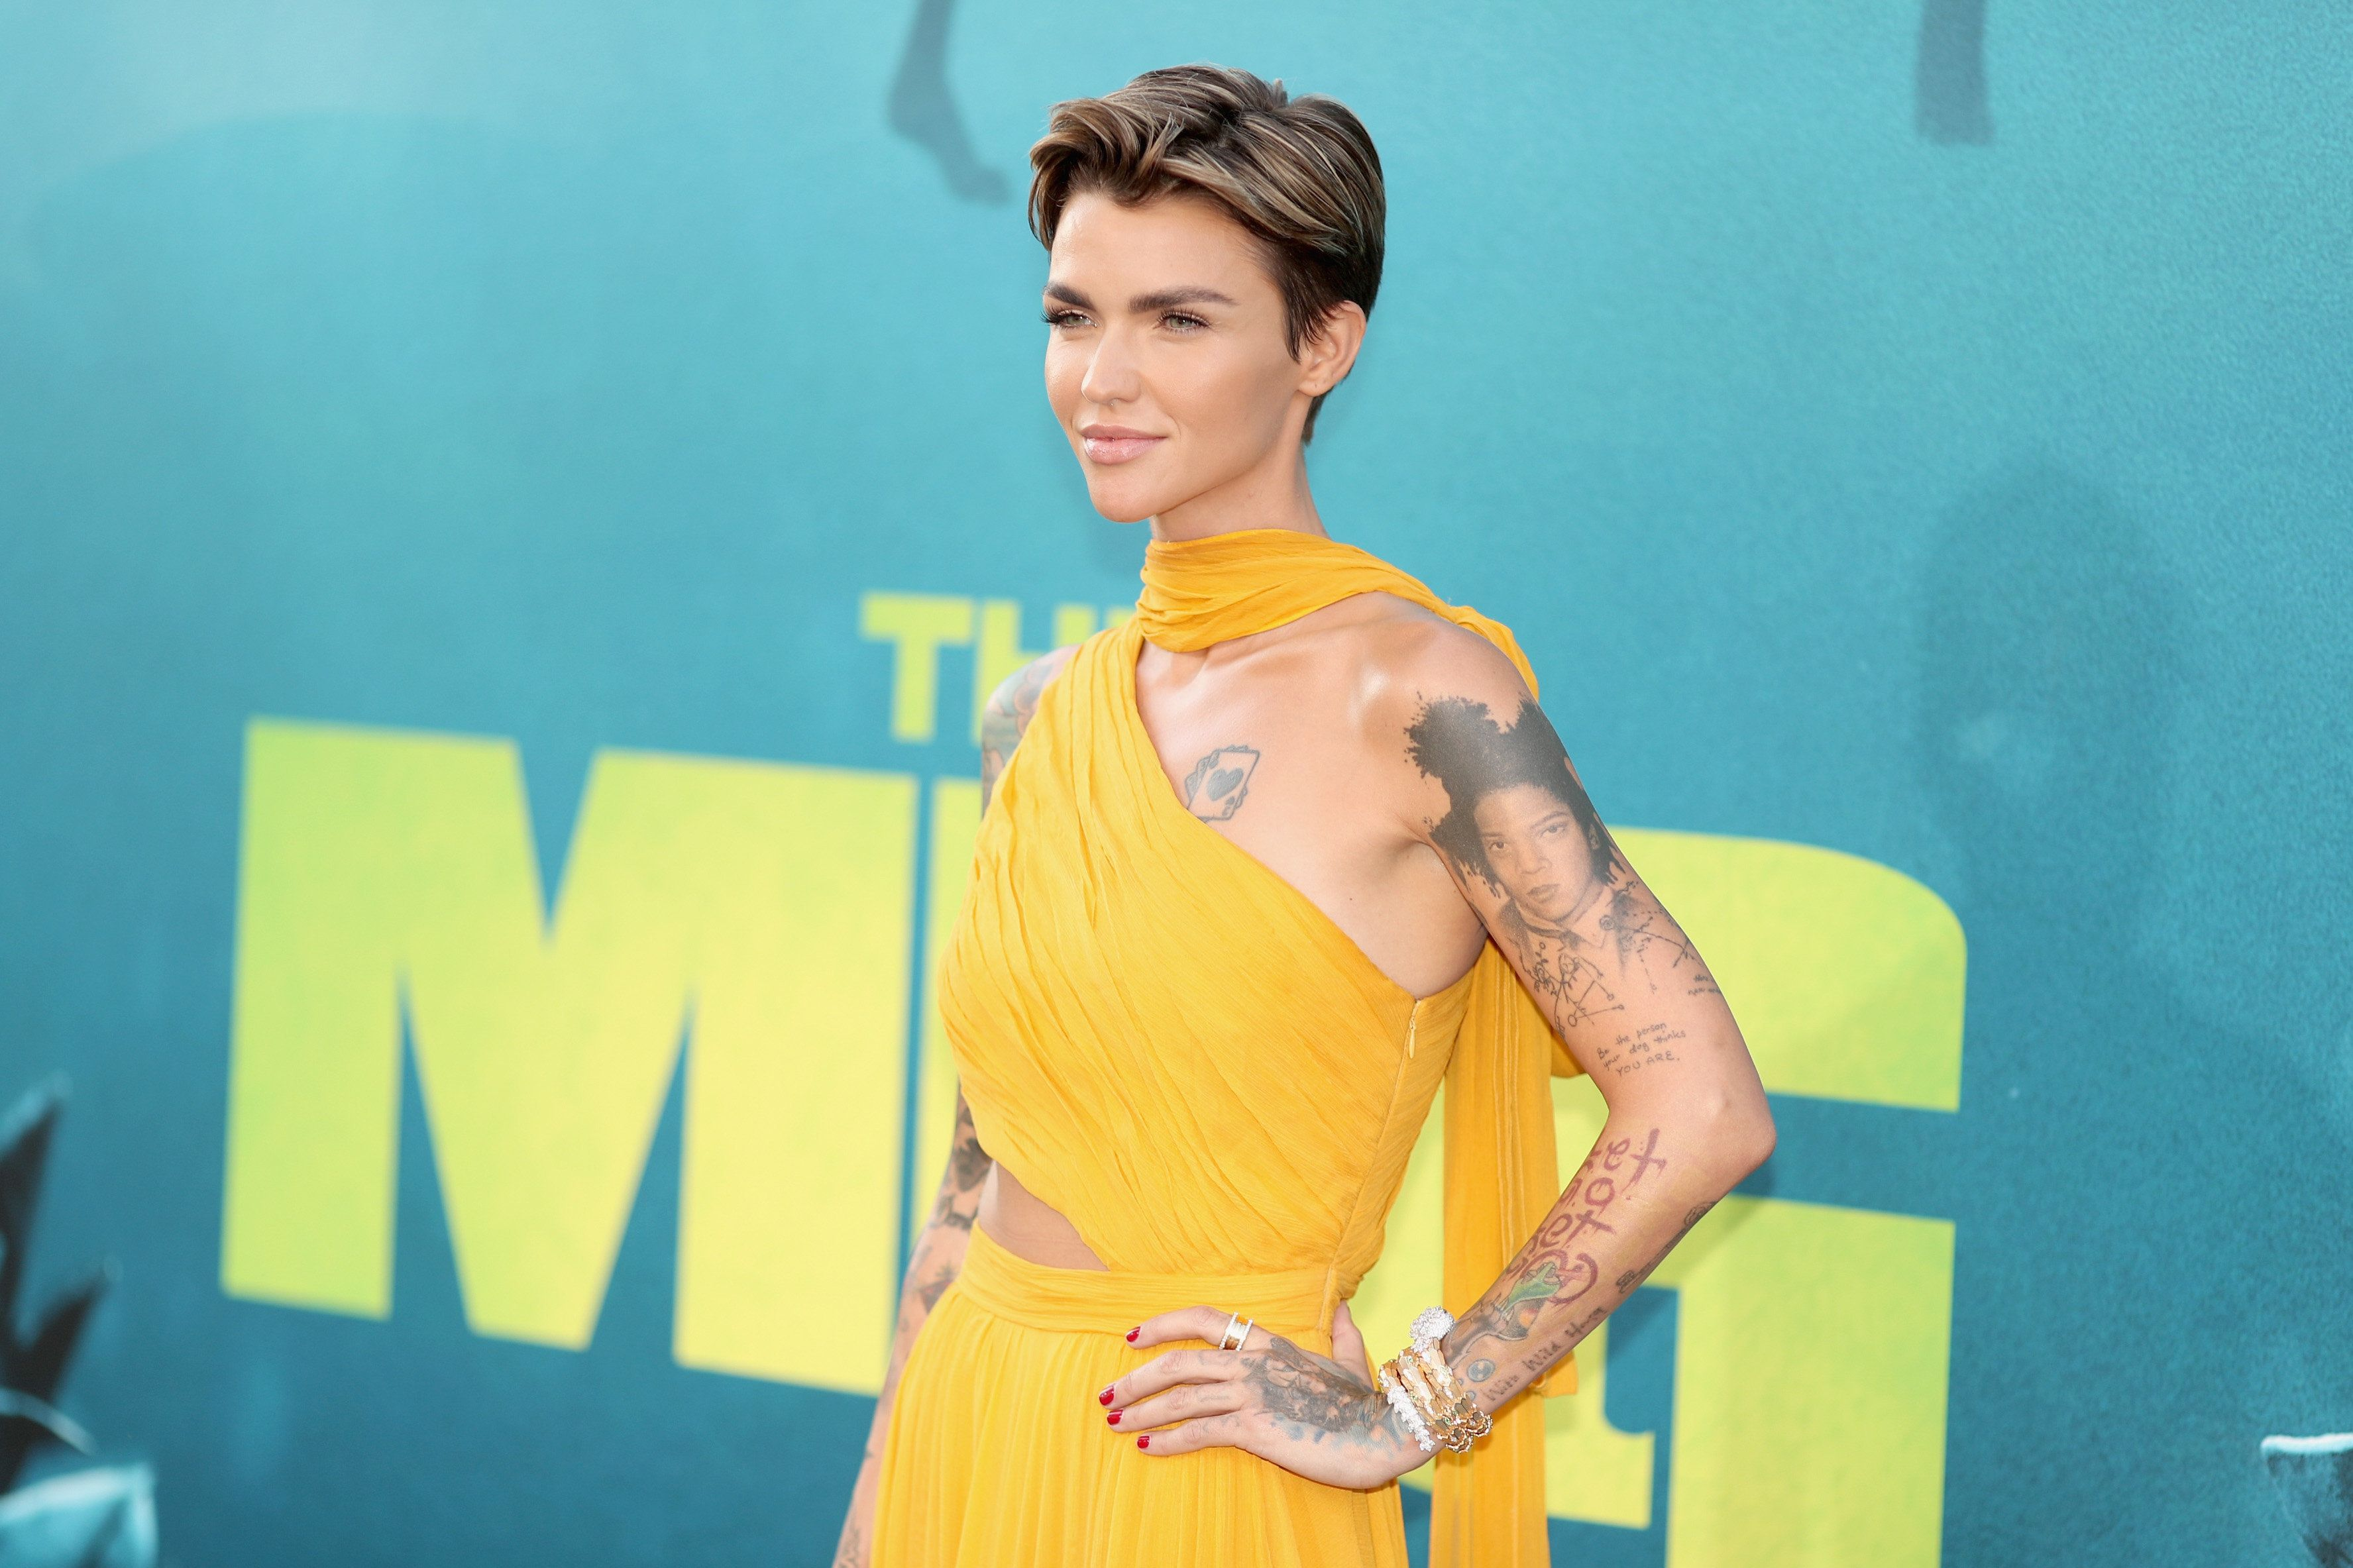 HOLLYWOOD, CA - AUGUST 06:  Ruby Rose attends Warner Bros. Pictures And Gravity Pictures' Premiere of 'The Meg' at TCL Chinese Theatre IMAX on August 6, 2018 in Hollywood, California.  (Photo by Christopher Polk/Getty Images)